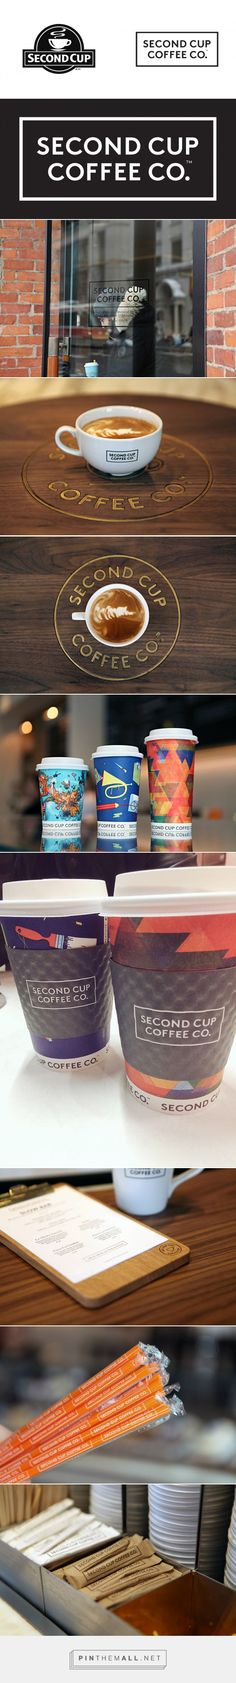 Brand New: New Name, Logo, and Identity for Second Cup Coffee Co. by Jacknife... - a grouped images picture - Pin Them All